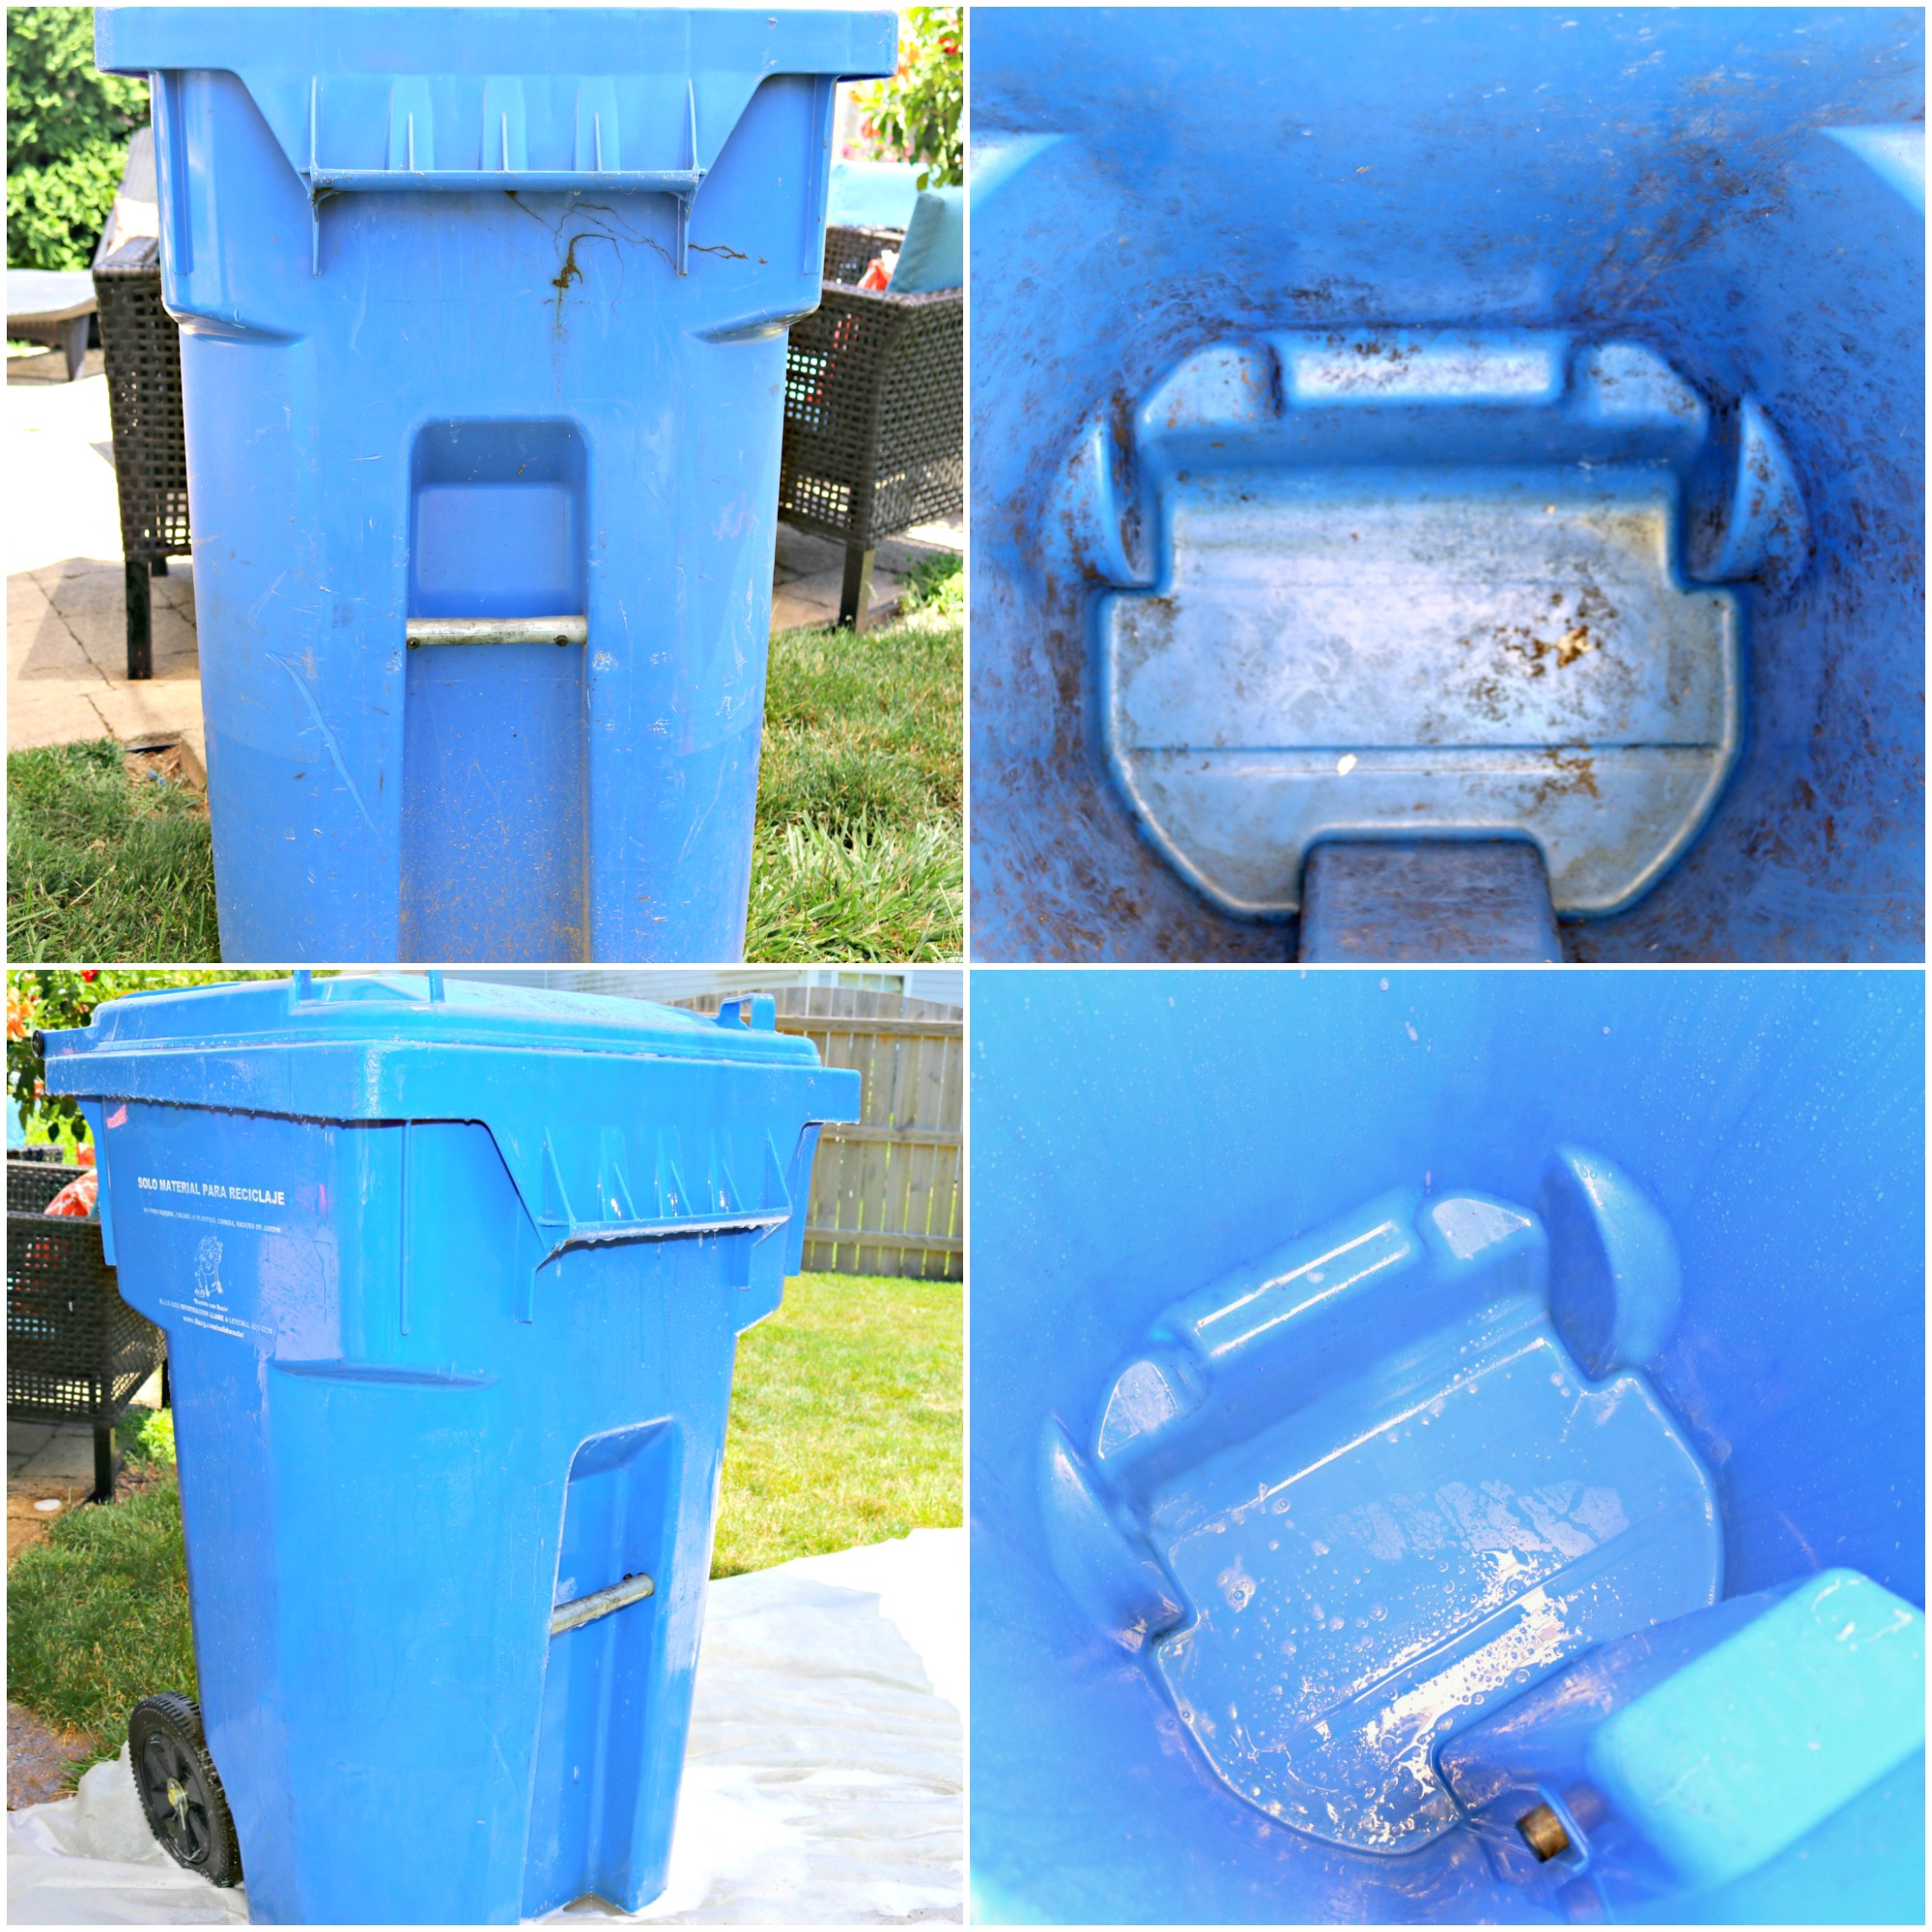 Cool Trash Bins How To Clean Outdoor Garbage Cans And Keep Them Clean Mom 4 Real